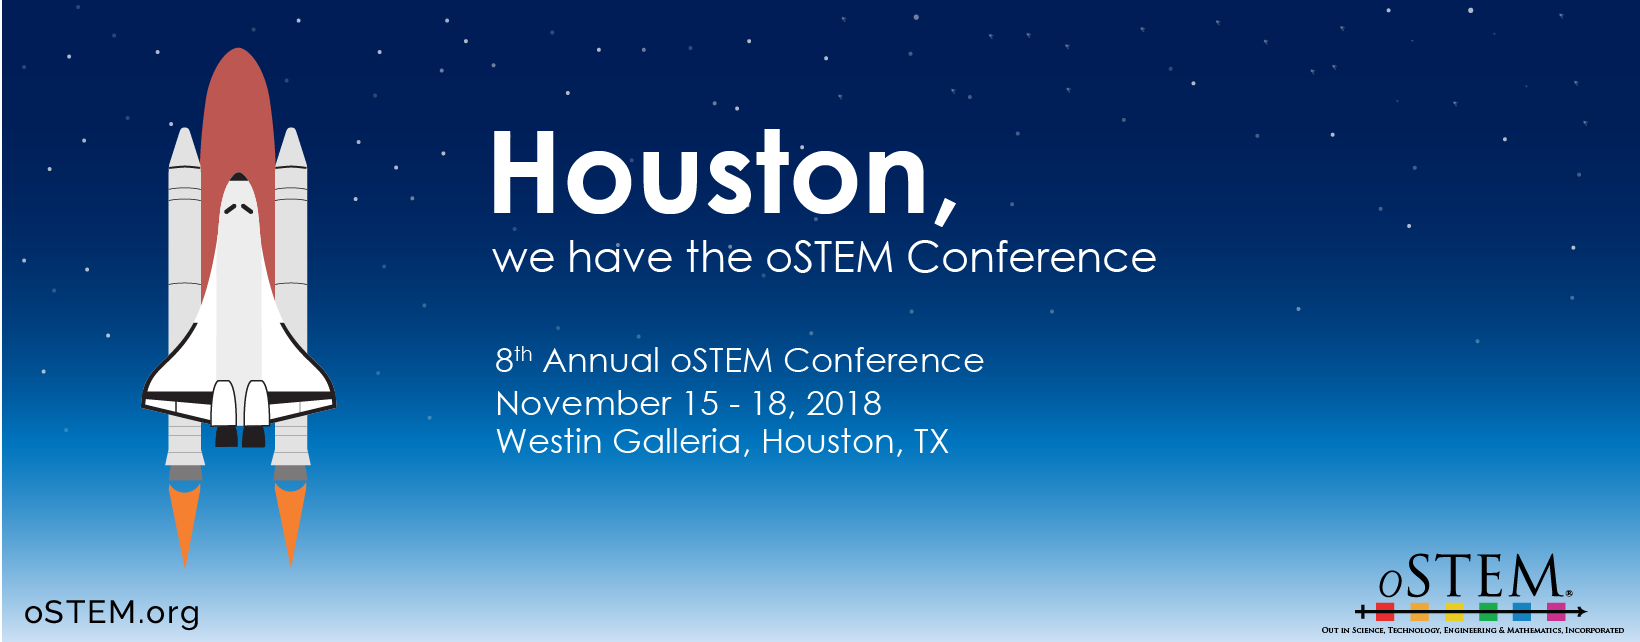 Houston, we have the oSTEM Conference